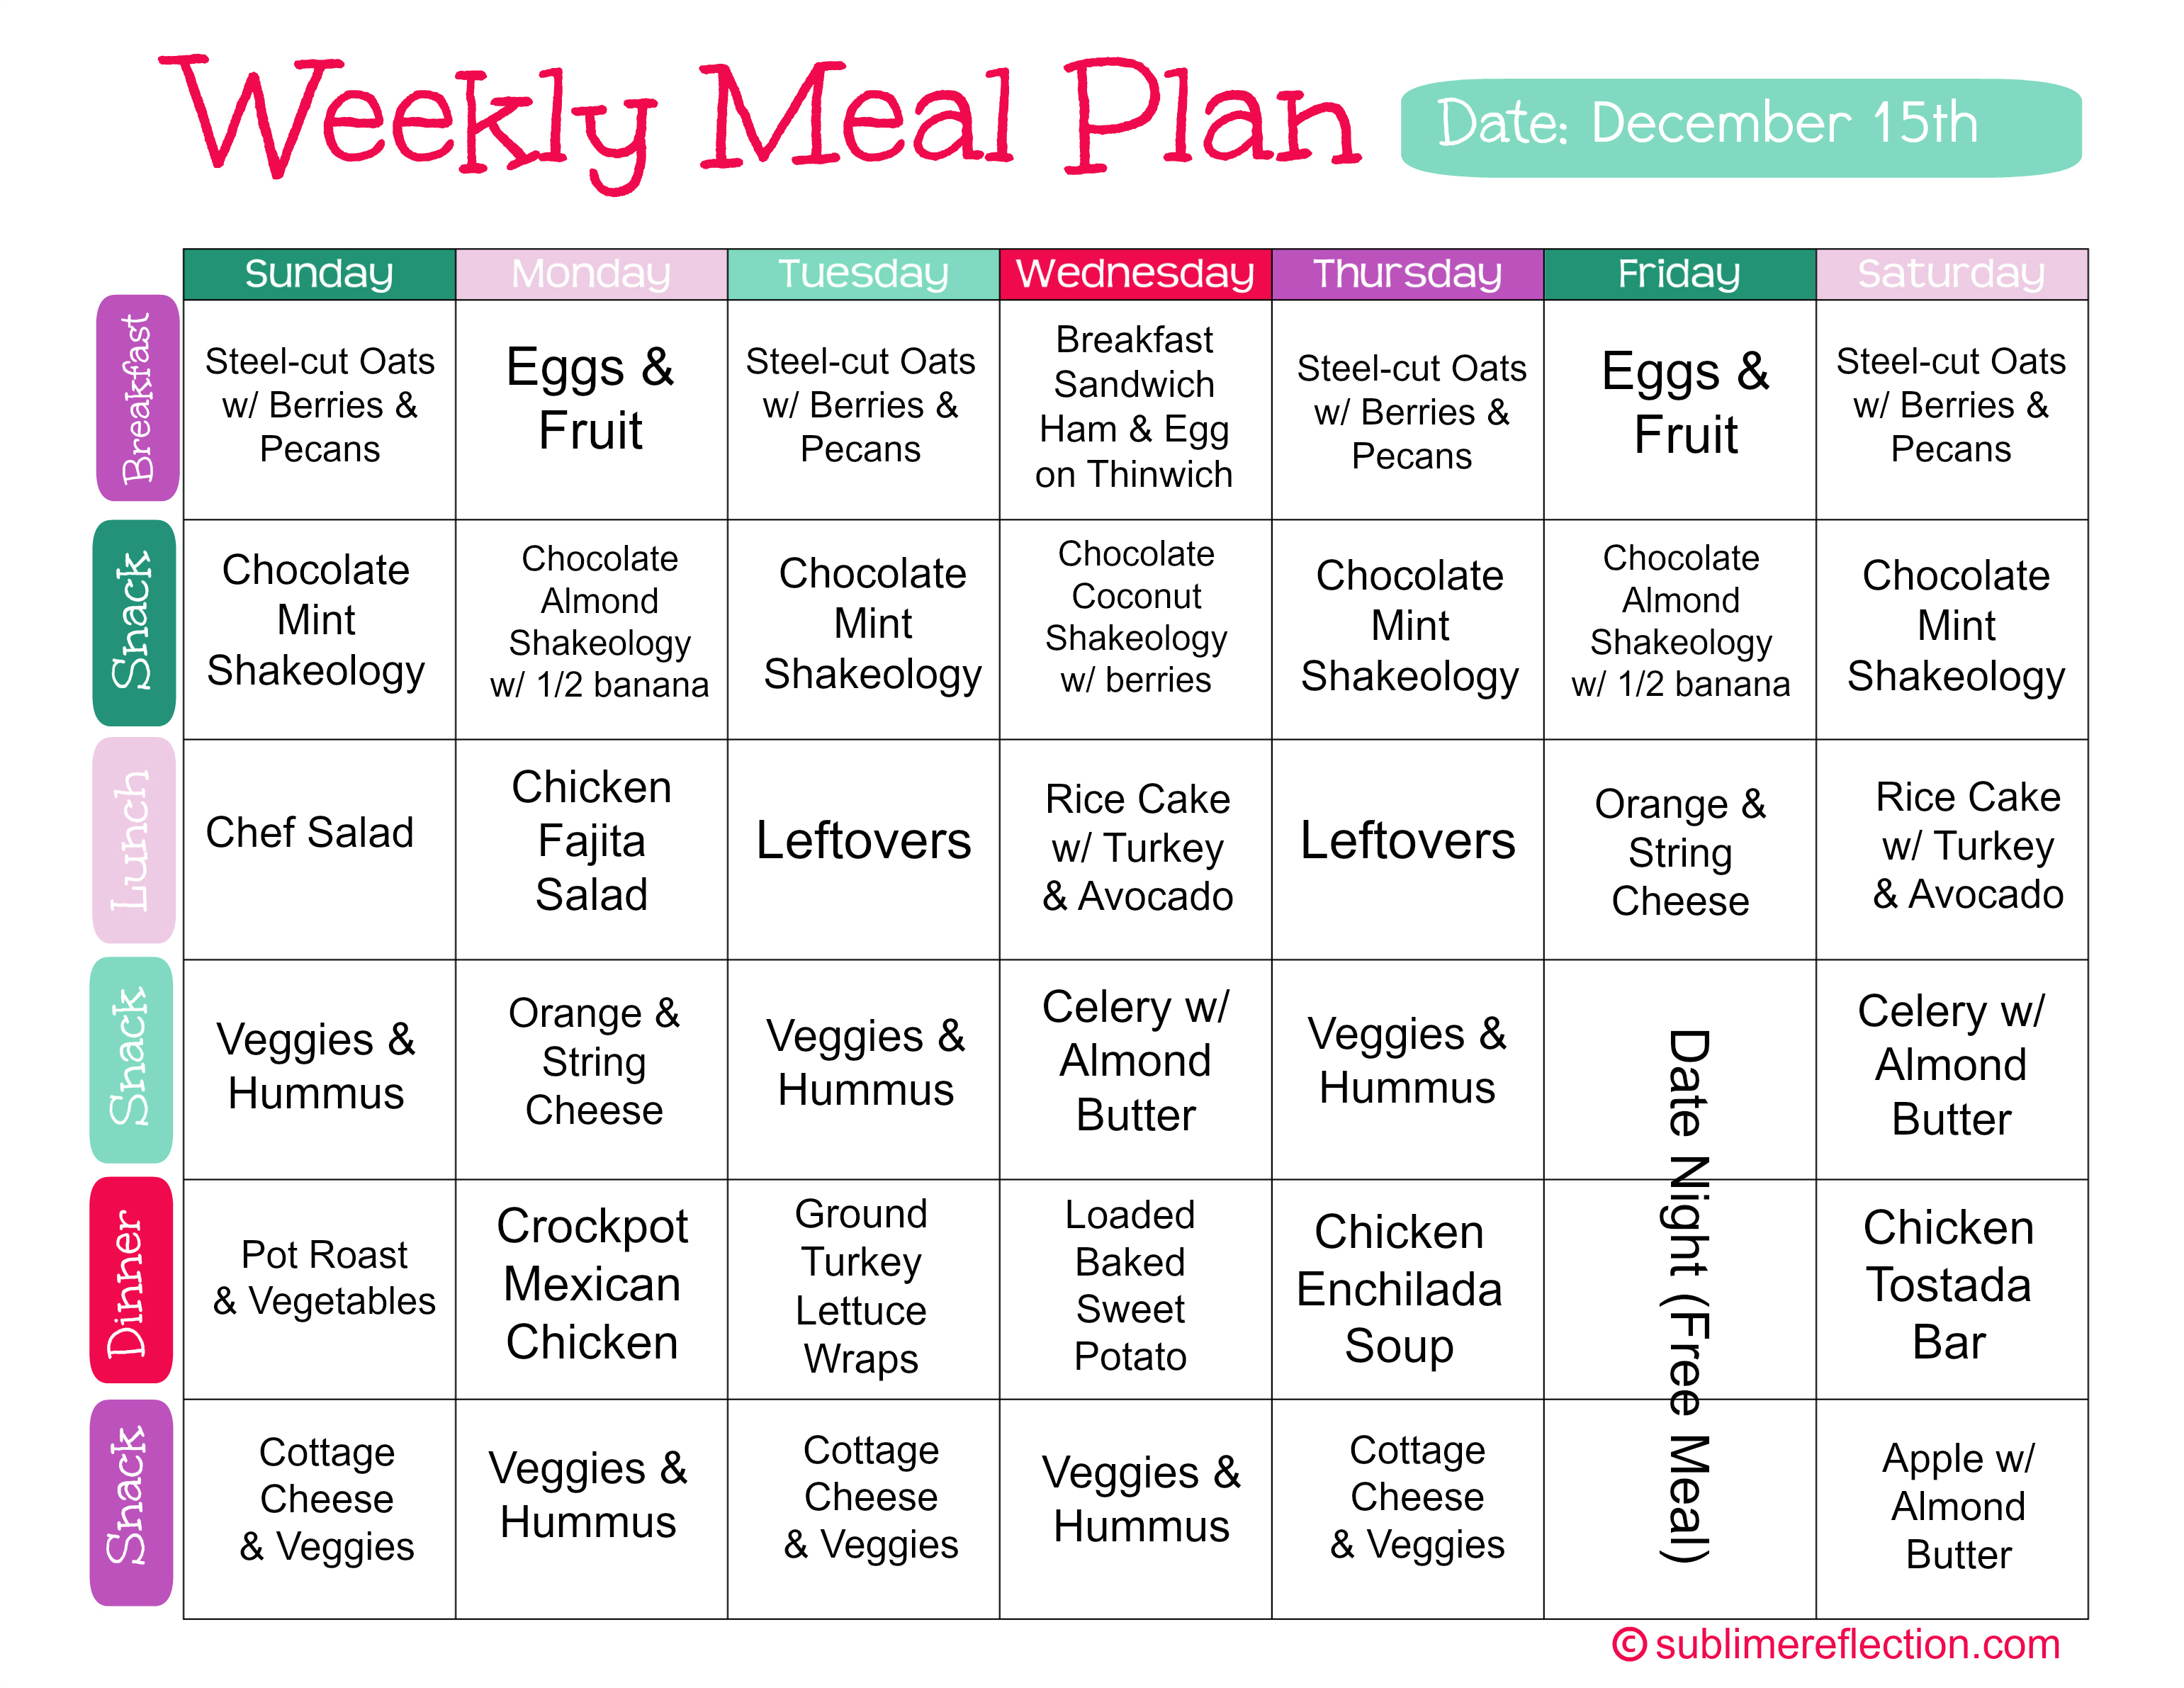 Meal Plans | Meal Plan Dec 15 Sublime Reflection